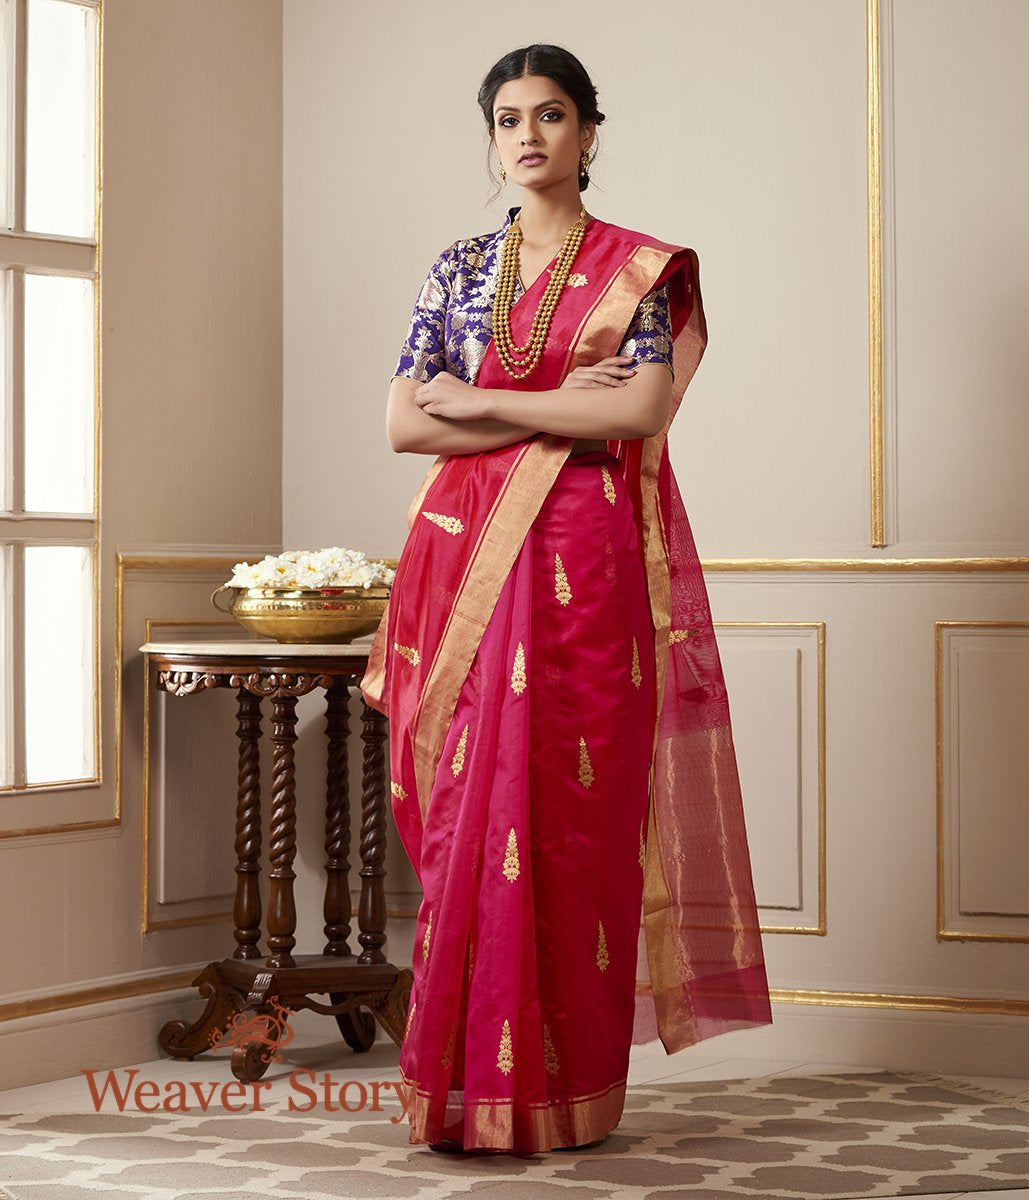 Handwoven Pink Chanderi Silk Saree with Gold Leaf Motif